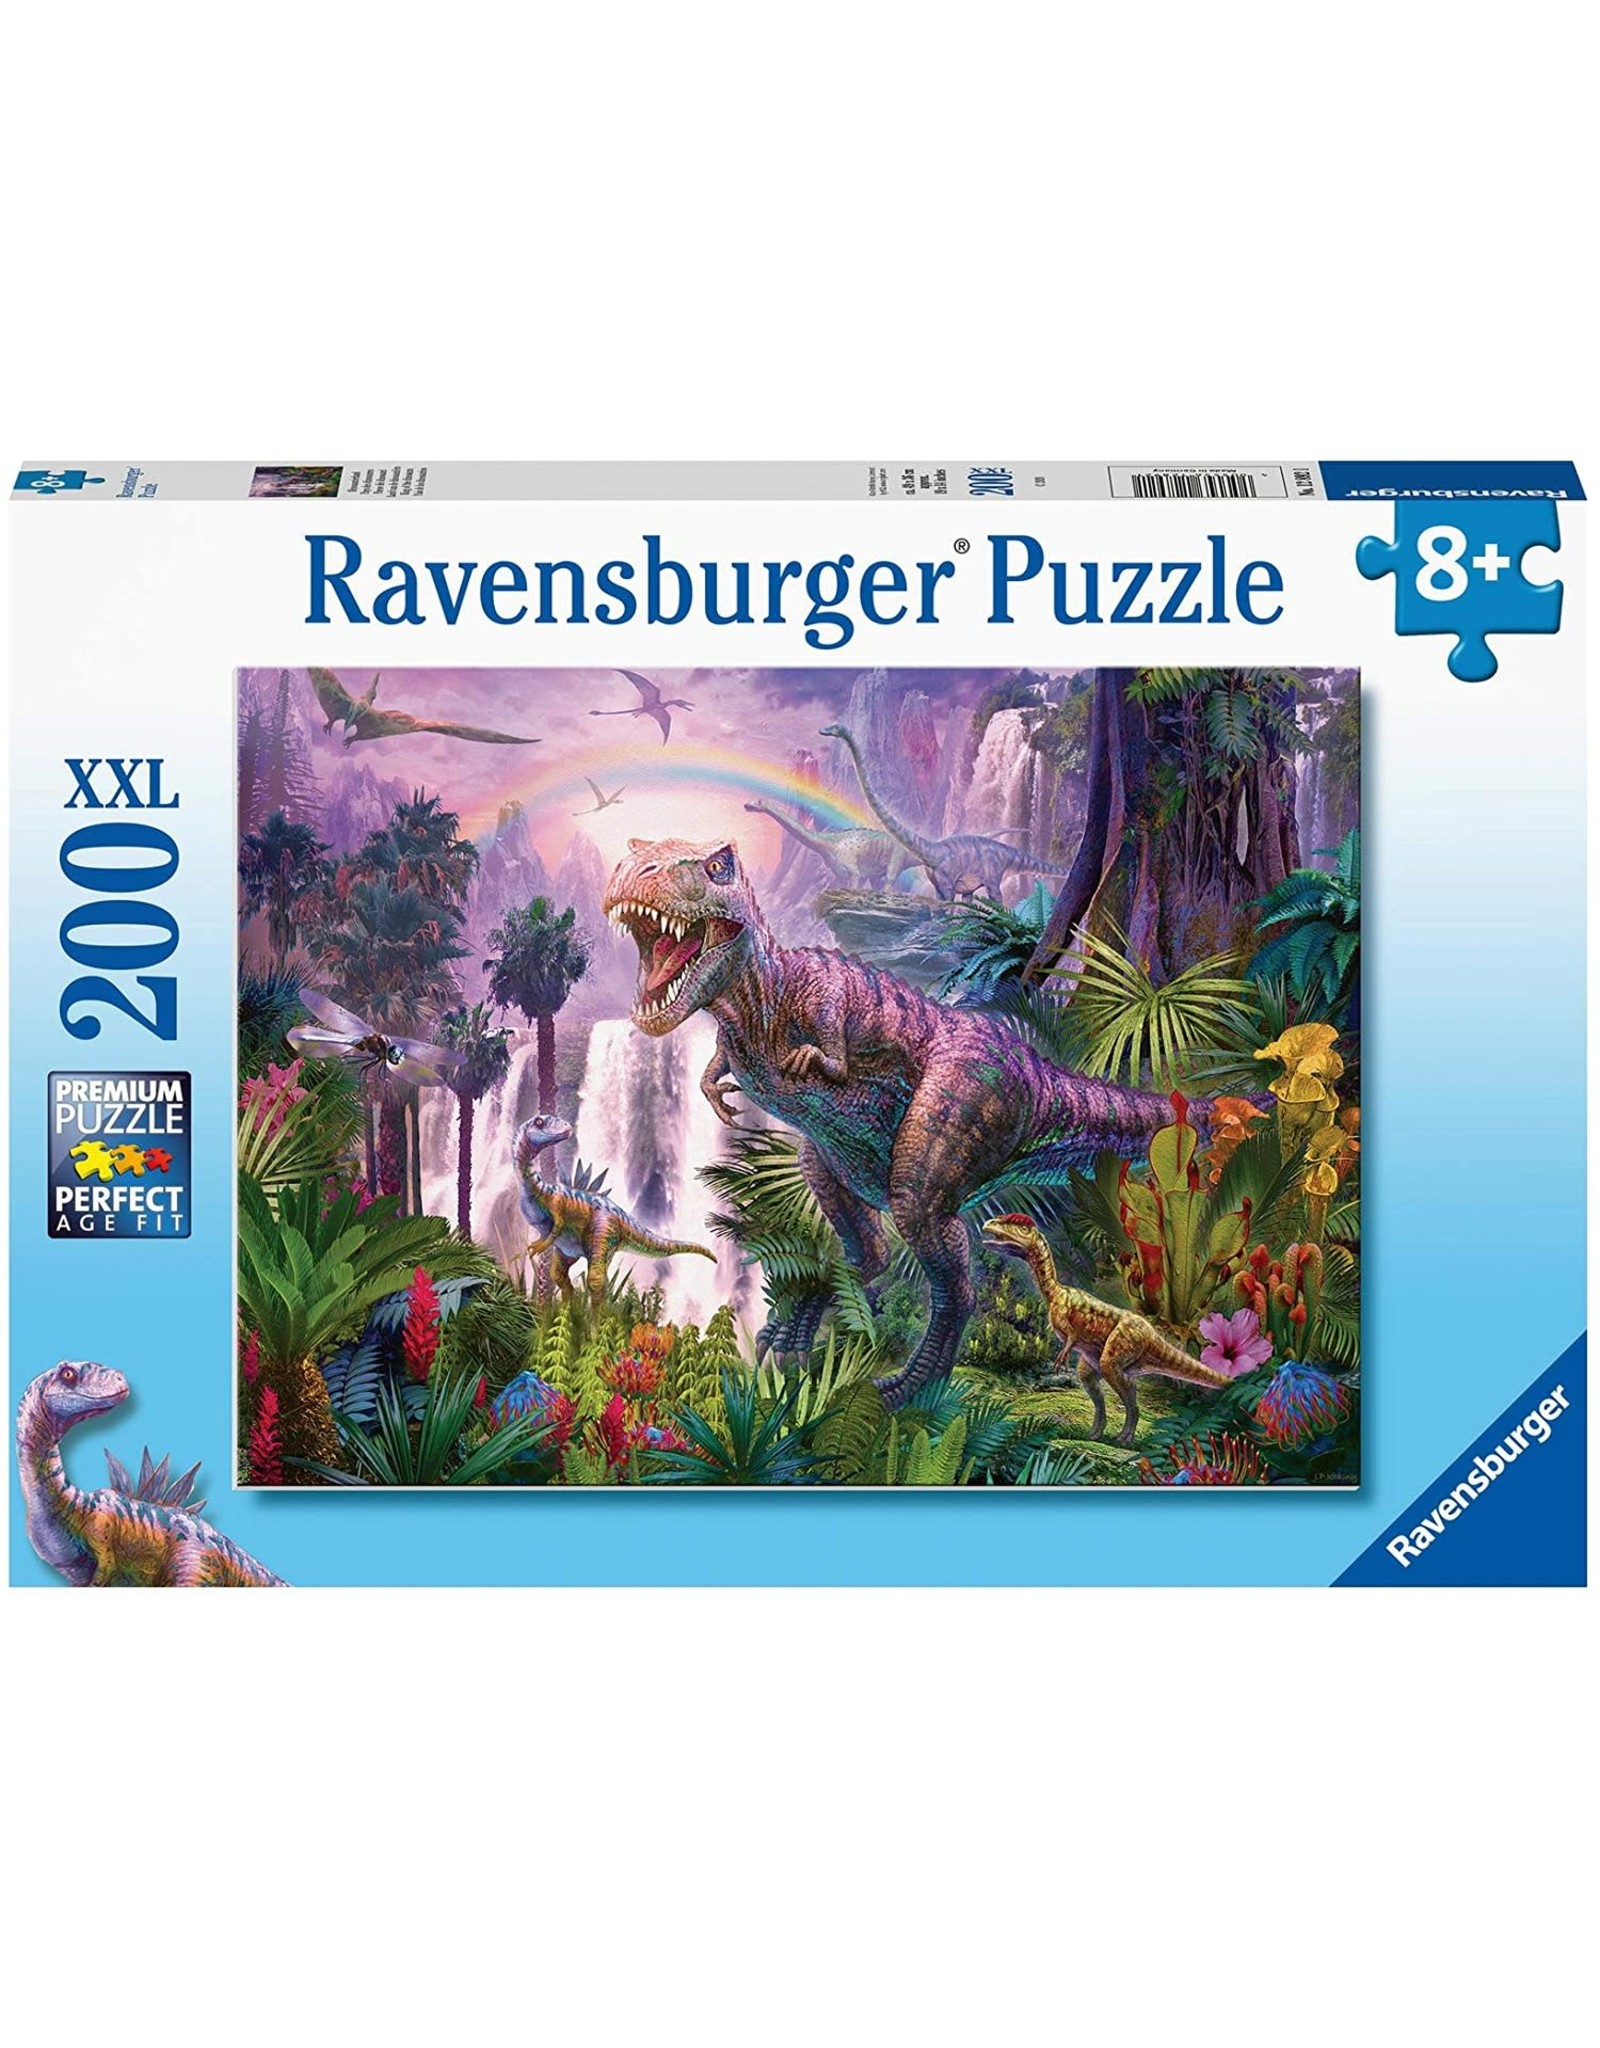 Ravensburger 200 pcs. King of the Dinosaurs Puzzle